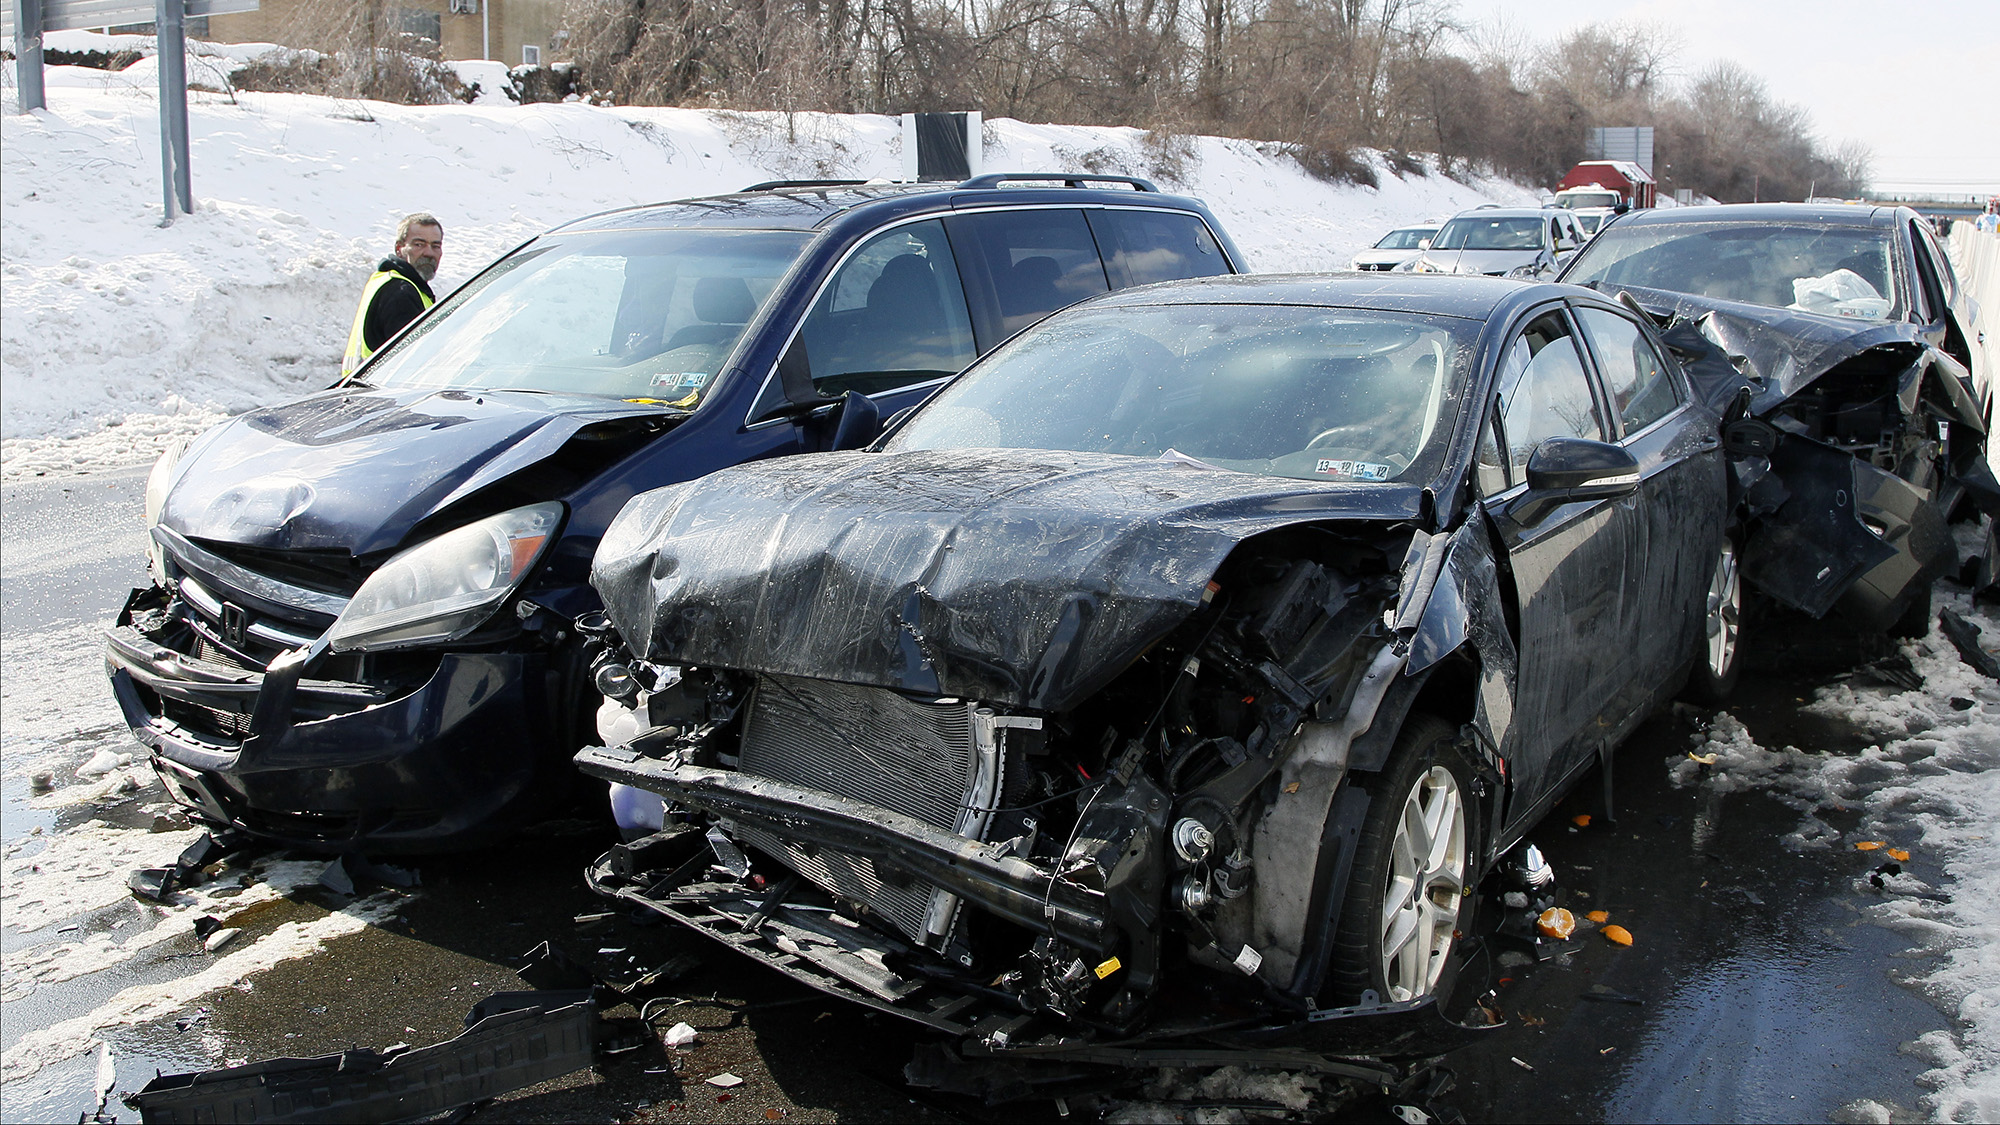 Smashed cars litter at the scene of an earlier multi-car and truck pile up the Pennsylvania Turnpike near the Bensalem interchange in Pennsylvania, February 14, 2014. The Pennsylvania Turnpike was littered with twisted metal from up to 50 vehicles in multiple accidents that injured at least 30 people. The road had to be closed during the morning commute, causing a 7-mile (11-km) backup, said Renee Vid Colborn, a spokeswoman for the Pennsylvania Turnpike Commission.   REUTERS/Tom Mihalek (UNITED STATES - Tags: DISASTER ENVIRONMENT) - RTX18UH4